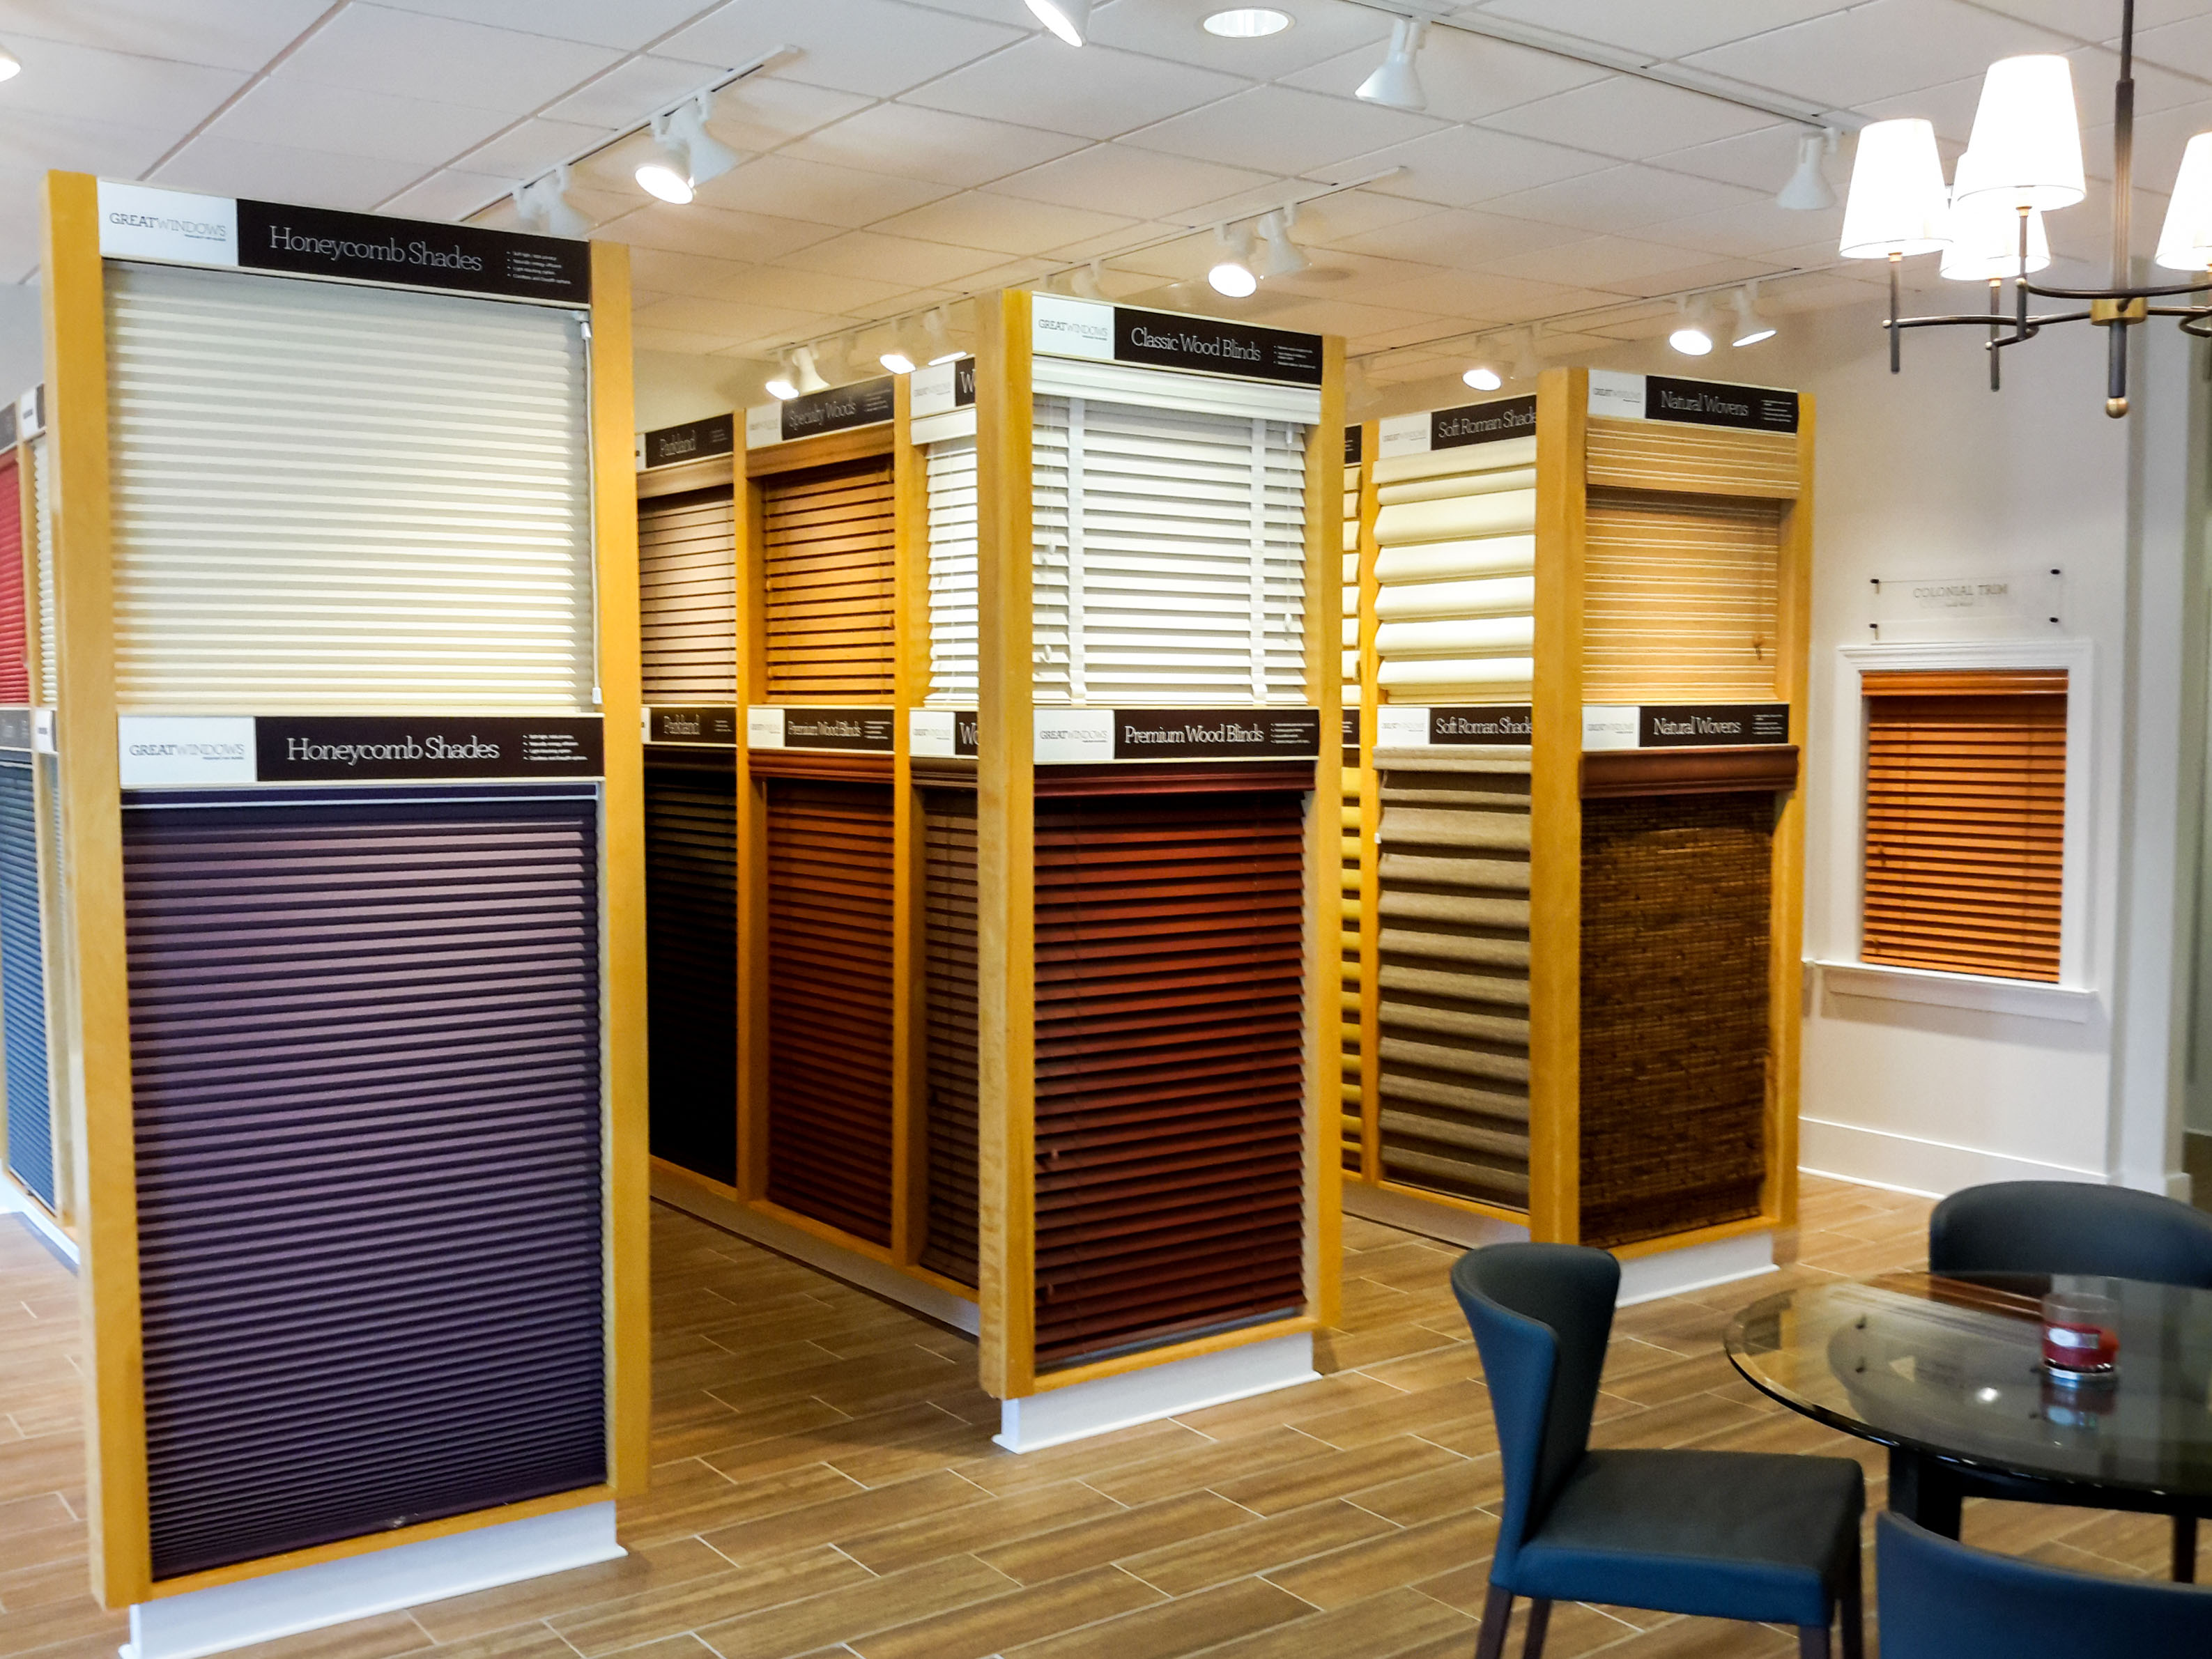 regard tilt pics attractive window next the shutters nice roller with fantastic functional plantation and clearview hidden high blinds treatments standard shade shades shutter vinyl nextday day quality bar